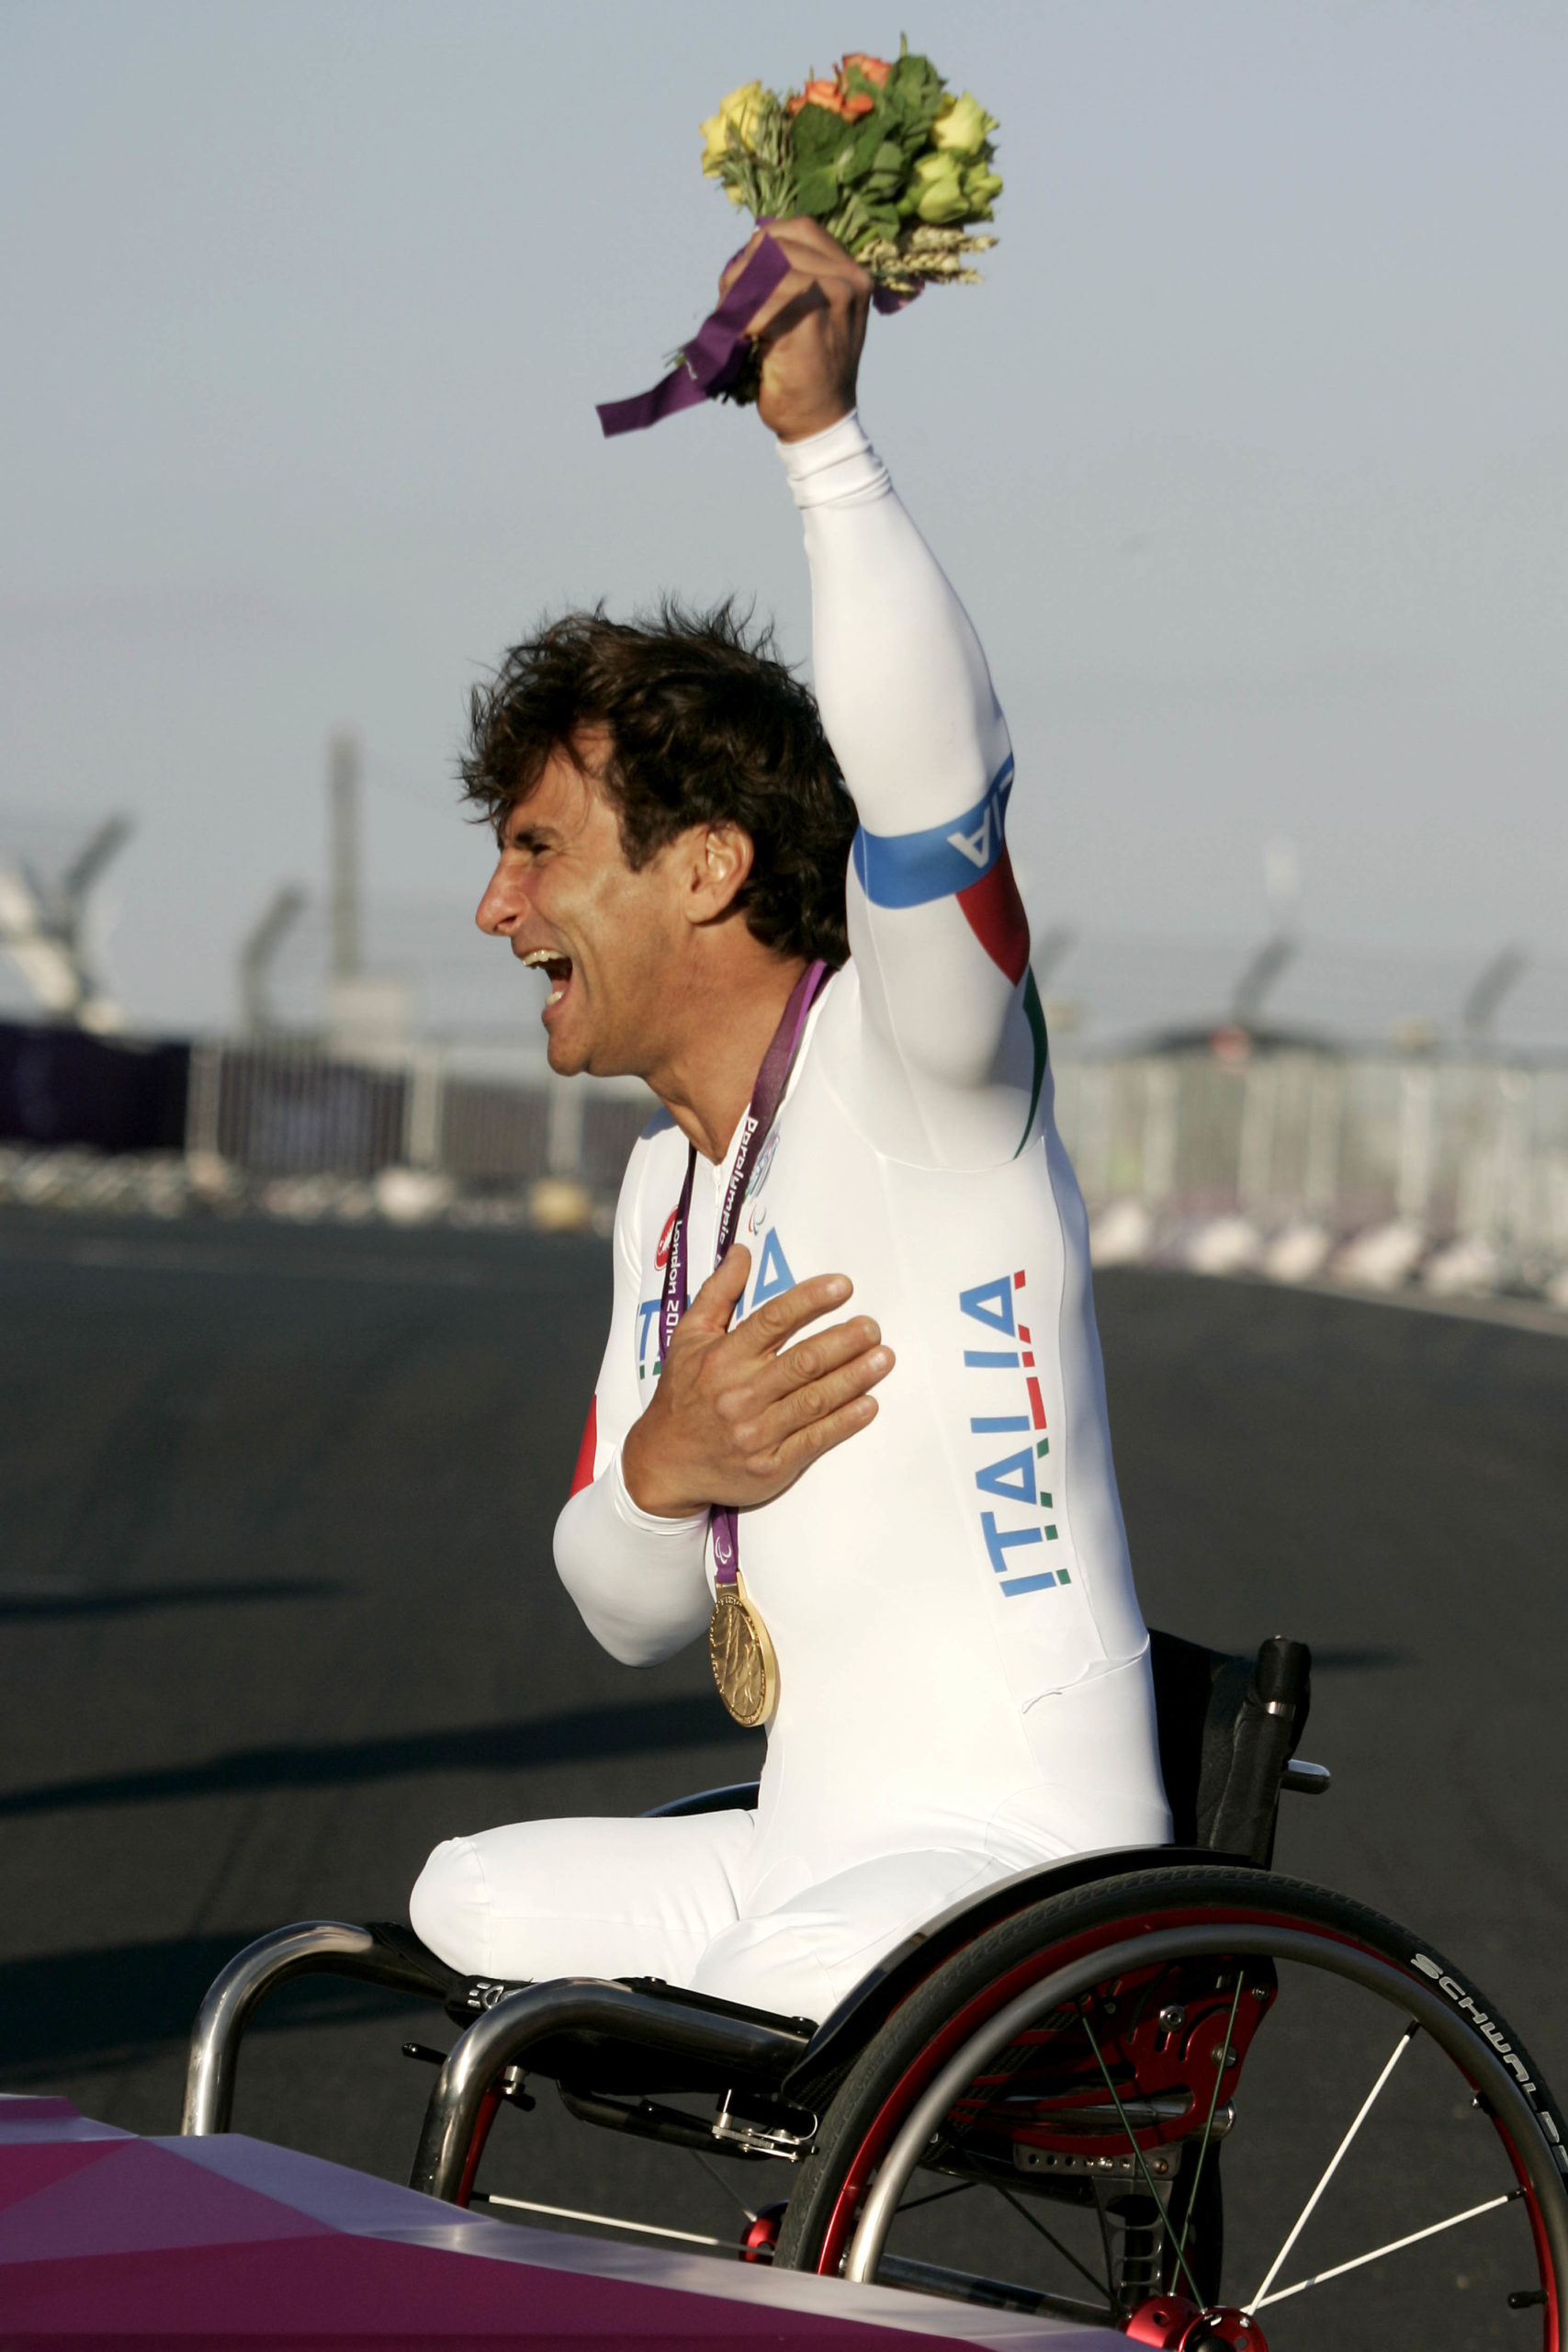 Alex-Zanardi-celebrates-winning-a-gold-medal-at-Brands-Hatch-during-the-London-2012-Olympic-games